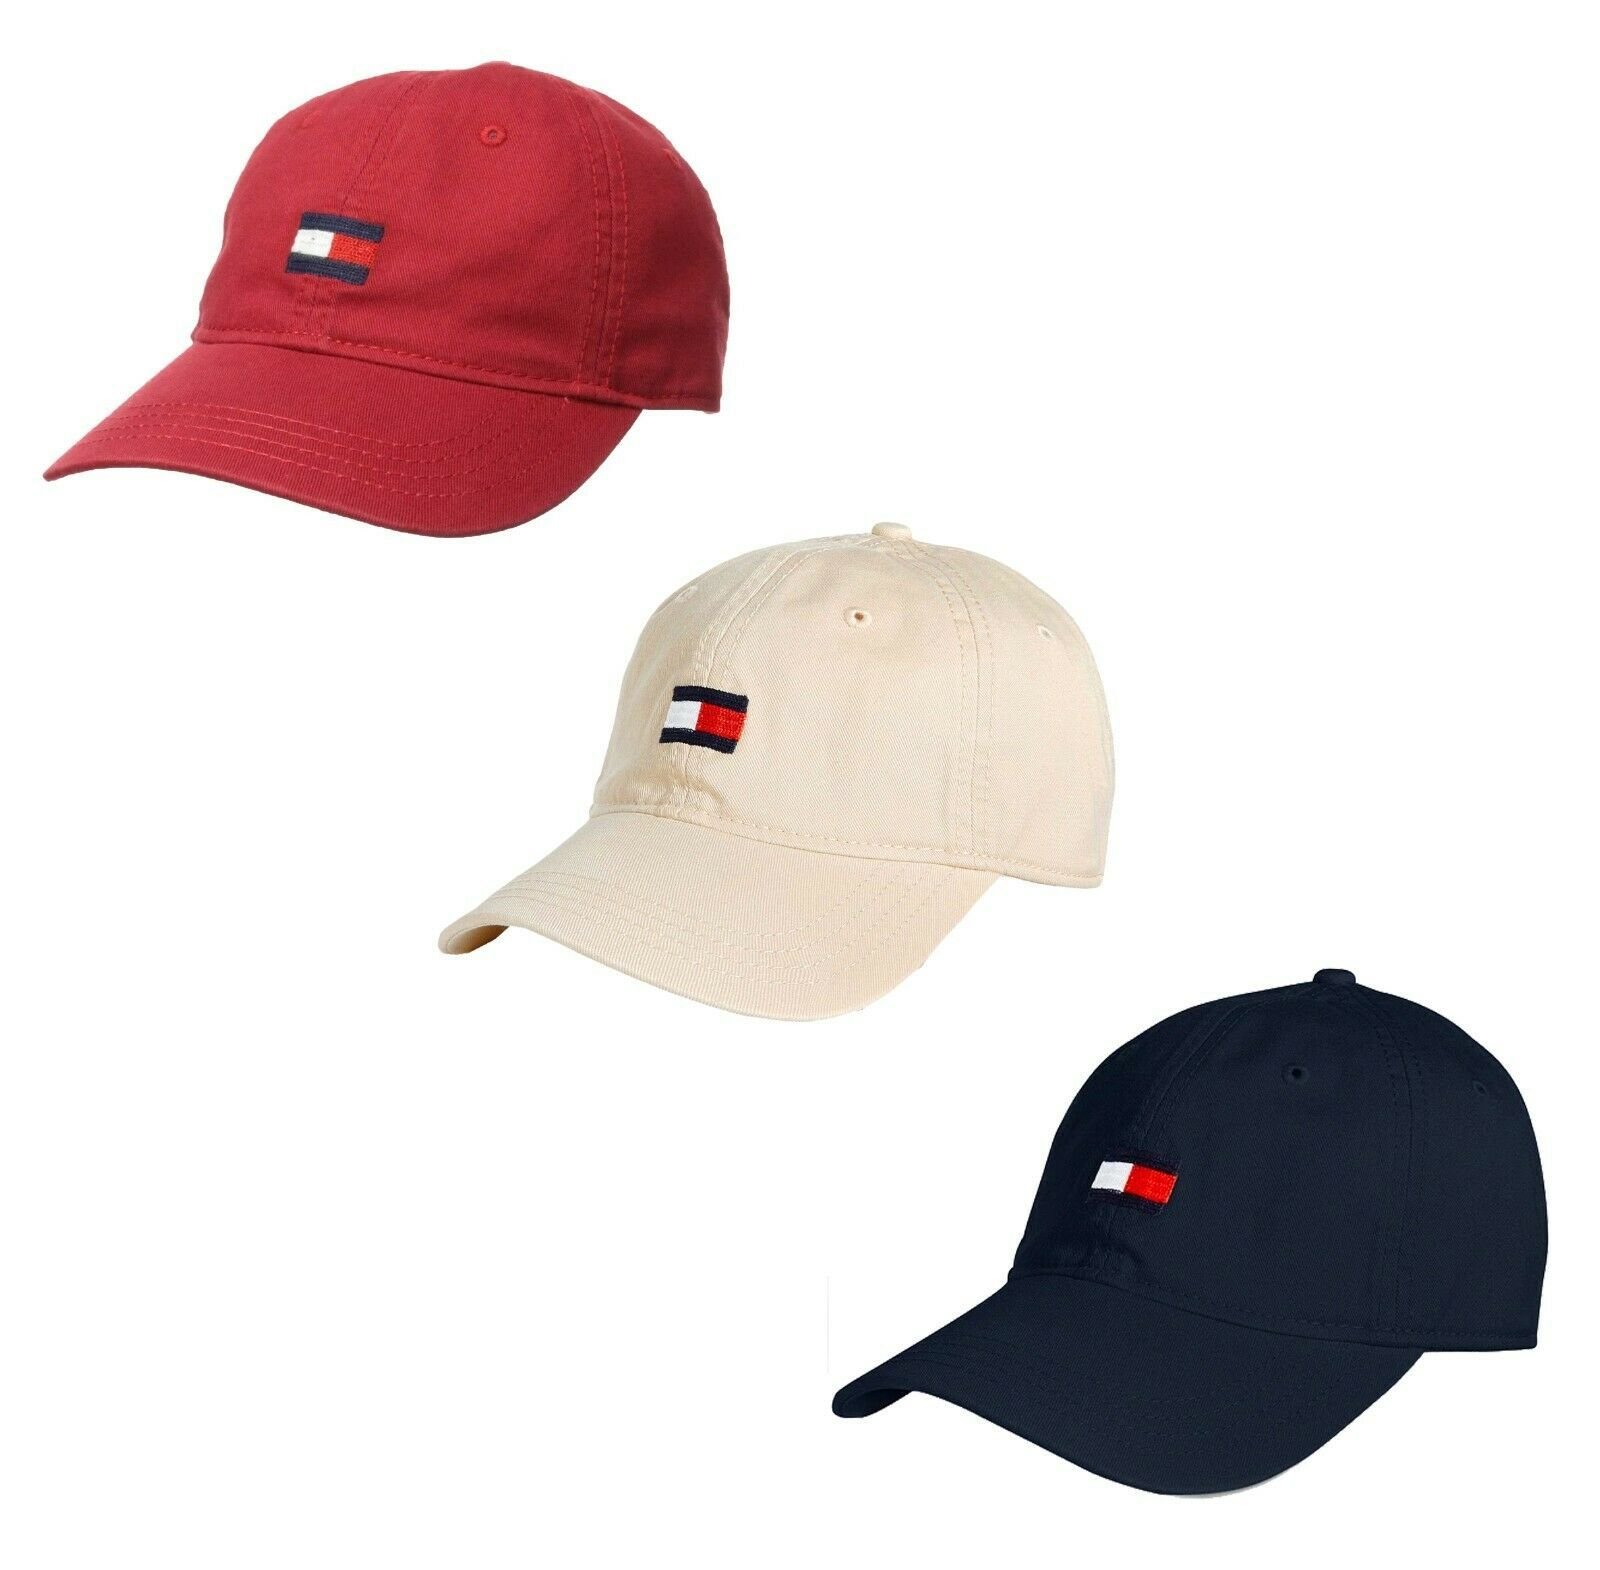 Tommy Hilfiger Men's Tommy Hat Embroidered Logo Sport Baseball Cap 69JI459 411